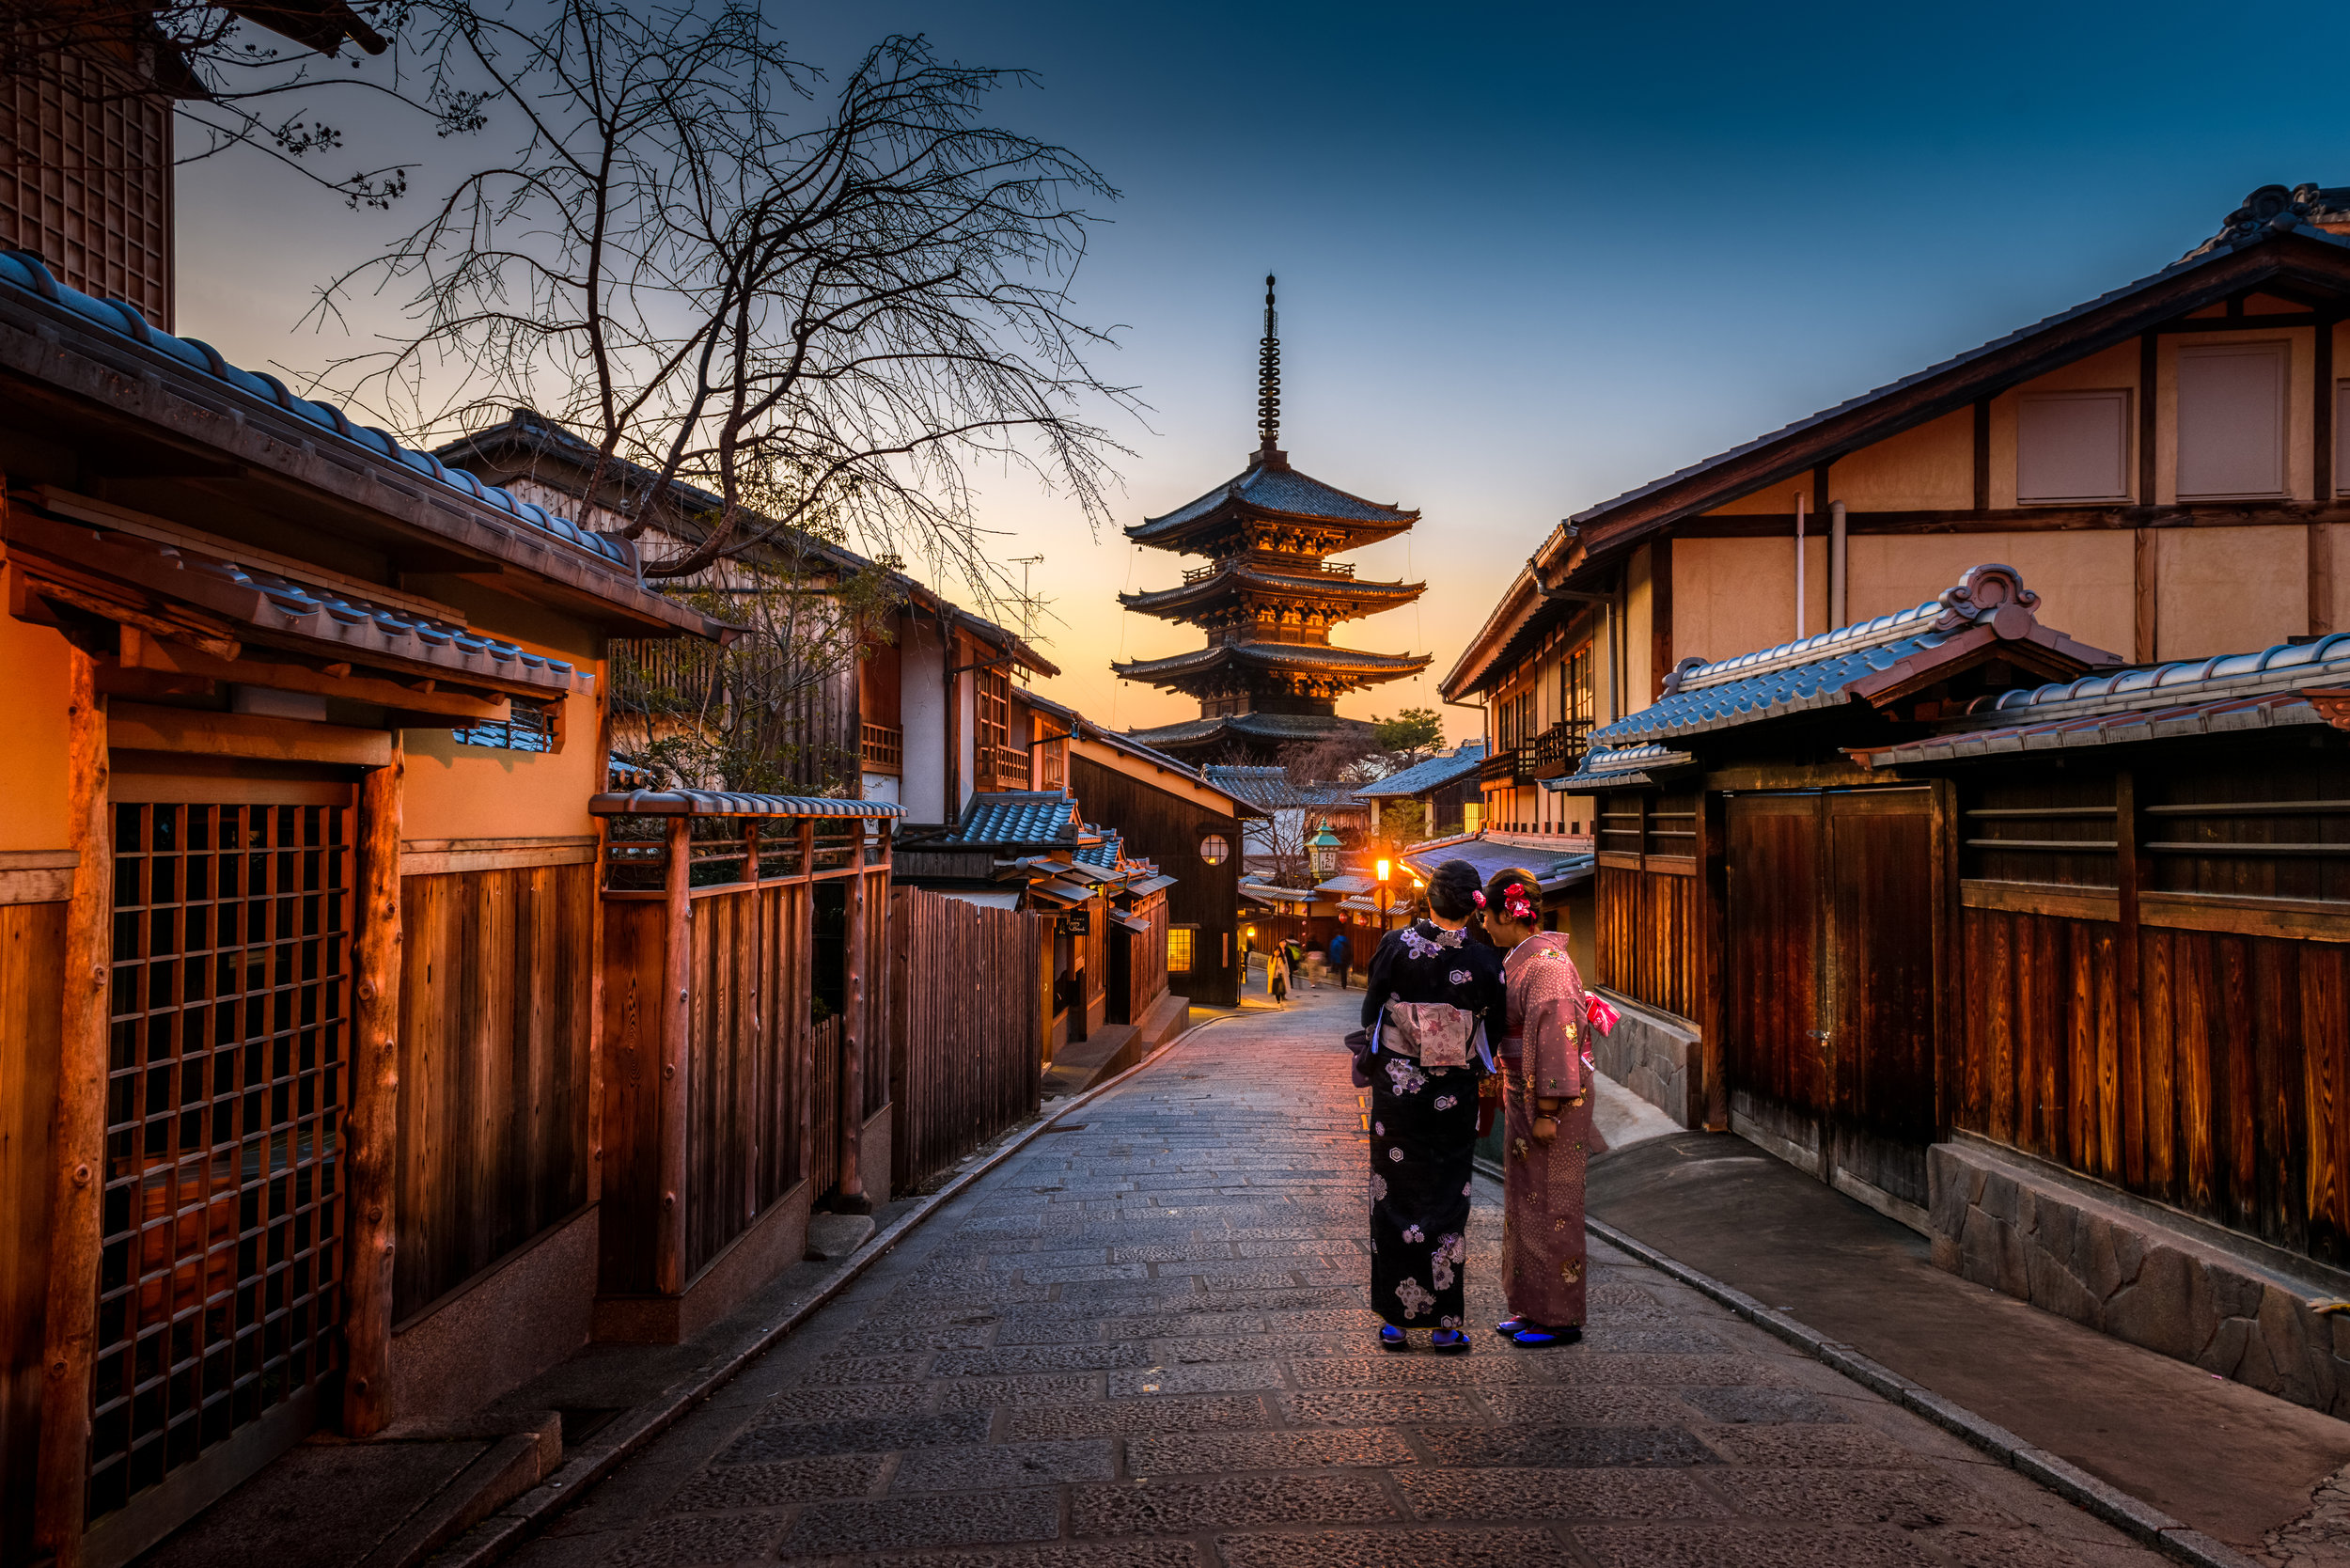 Japan - Come and explore Japan with us, a leader in the technology and innovation world!Next Experience: 11th April - 19th April 2020Experiences from £3449Deposit £200